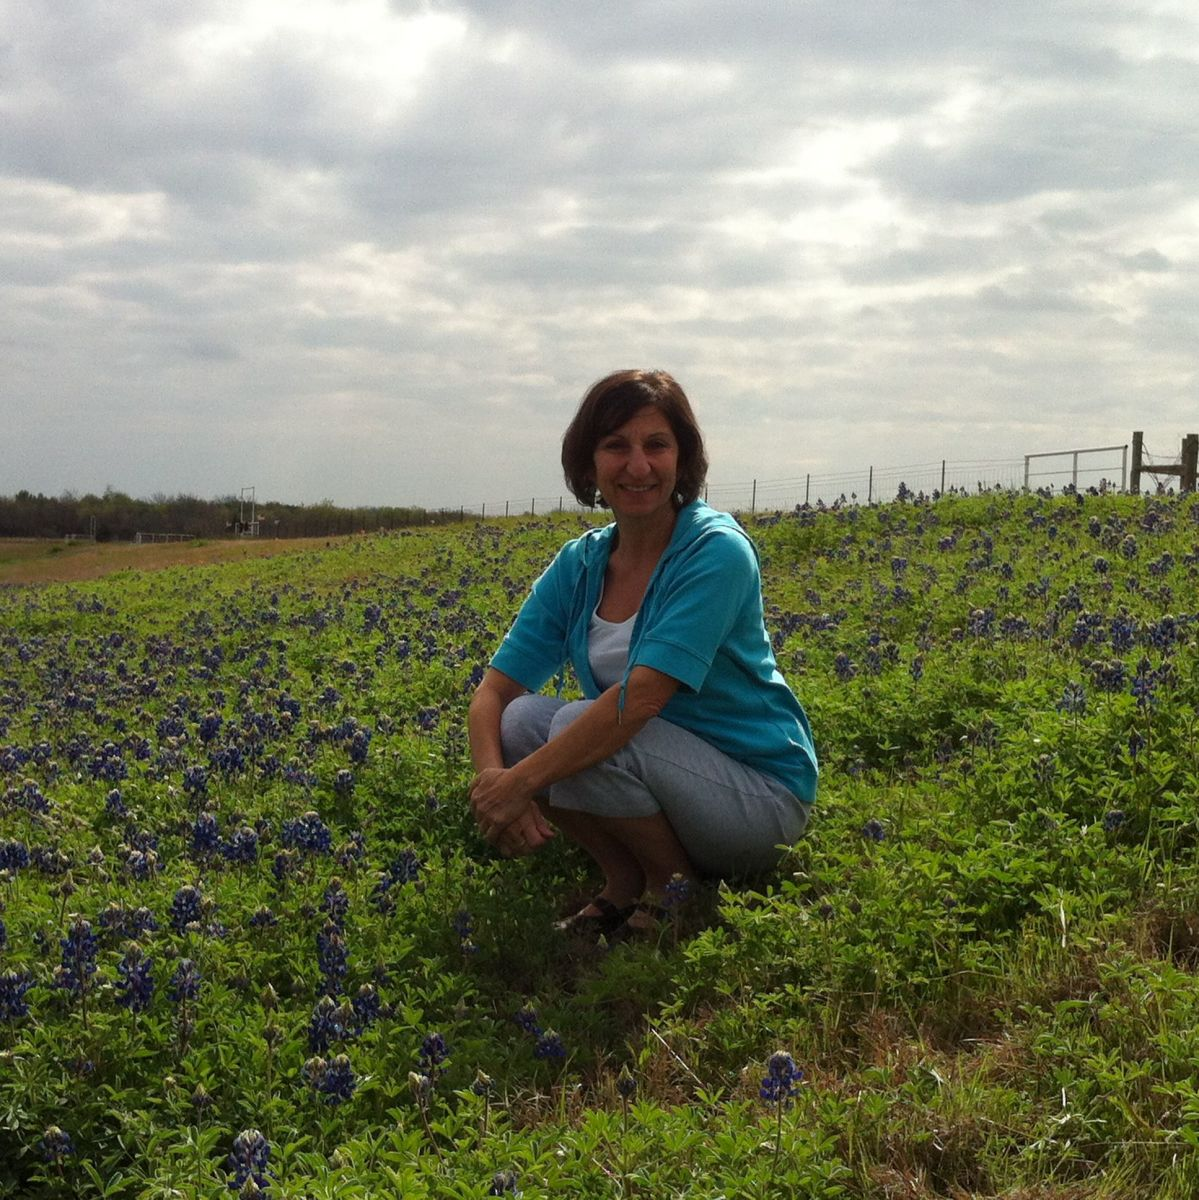 Me in a field of bluebonnets along highway 287 south almost to Corsicana